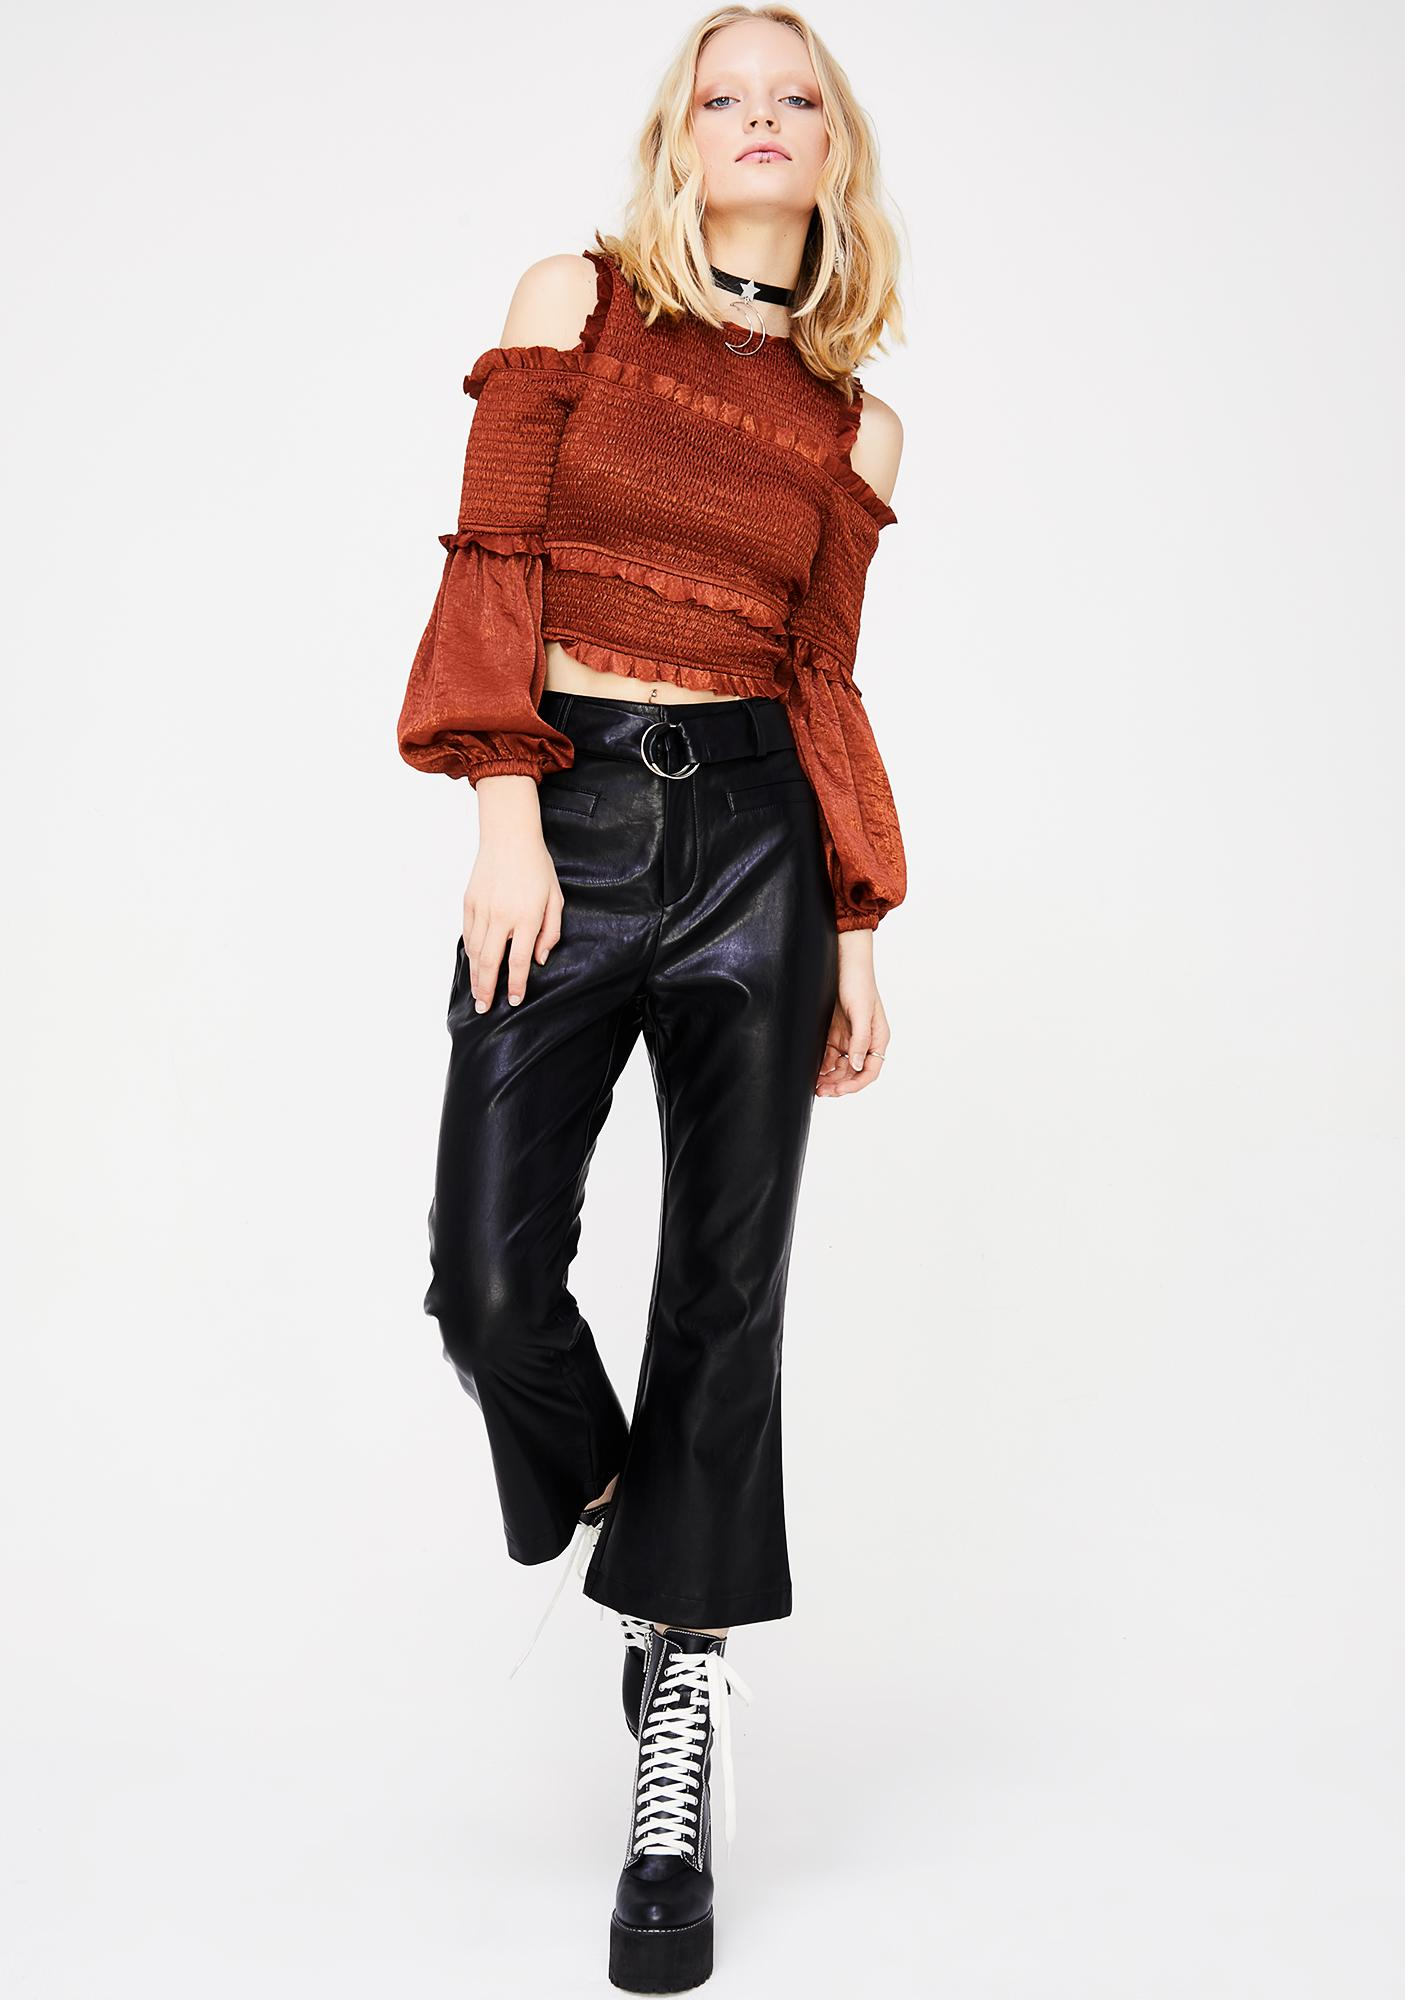 Bad Manners Ruffled Top